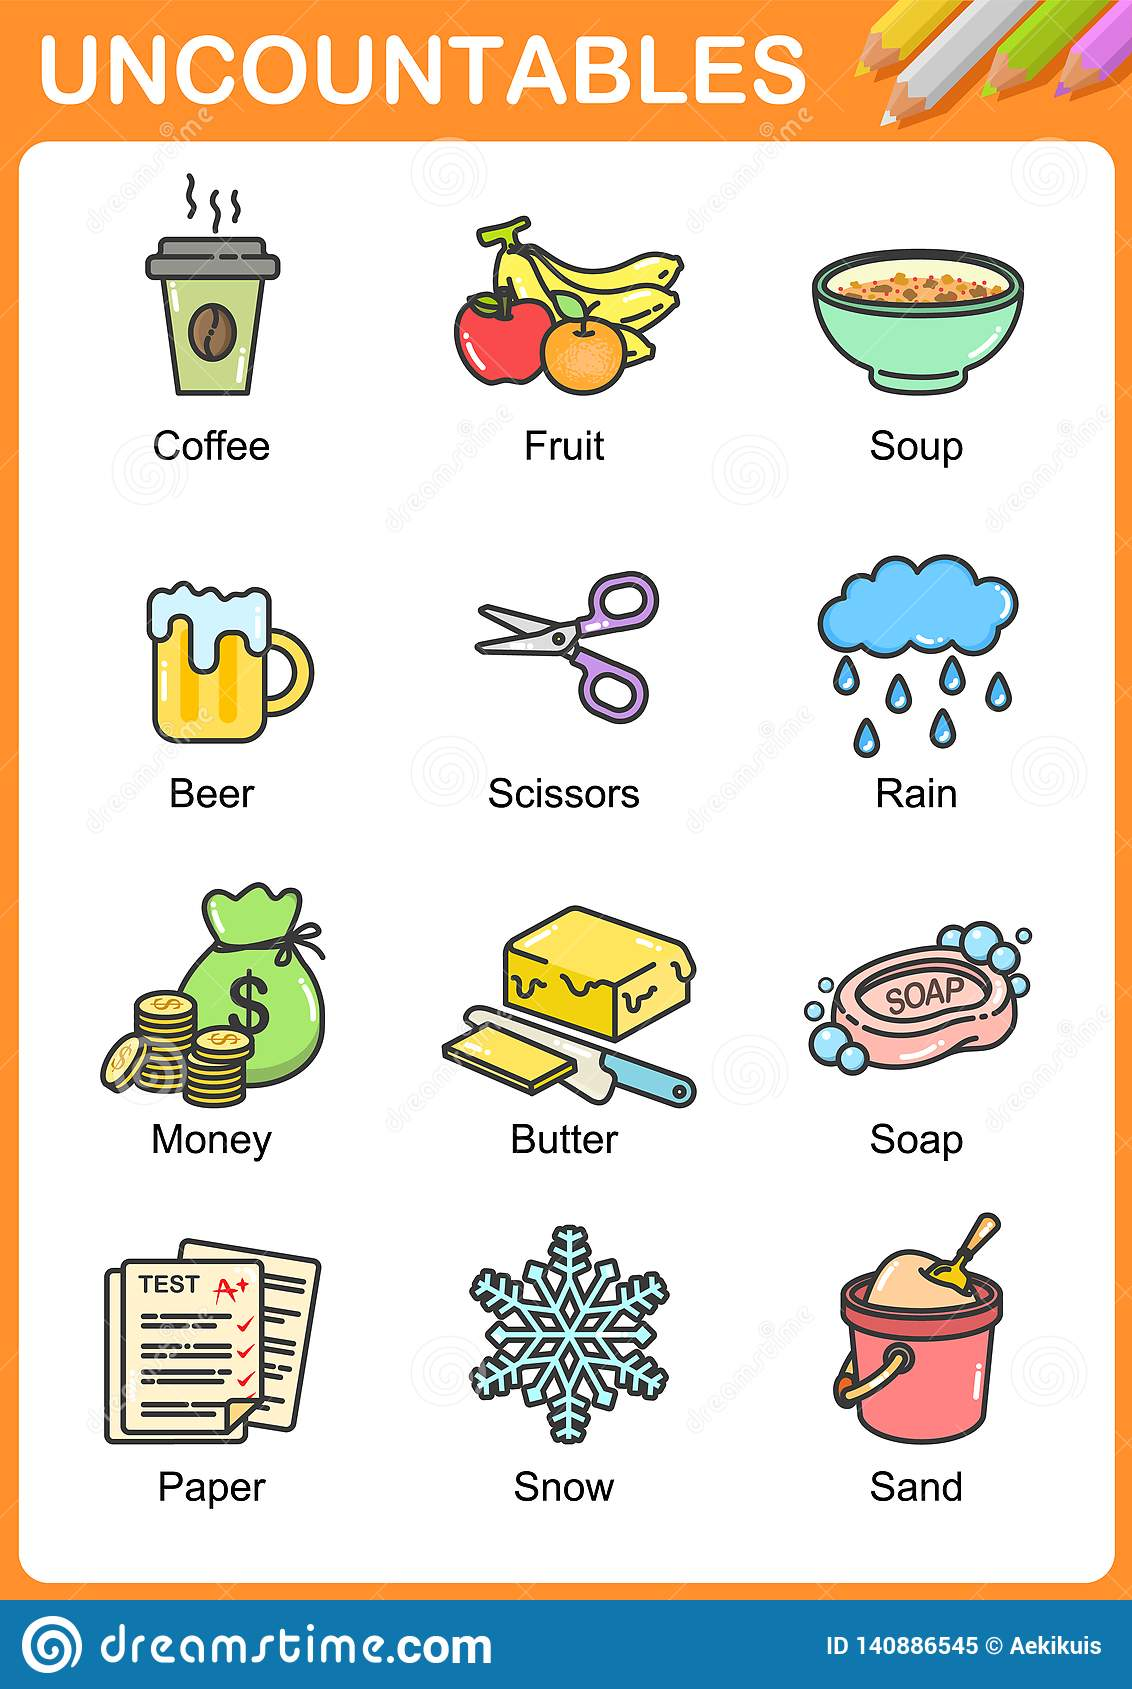 Worksheet On Uncountable Nouns